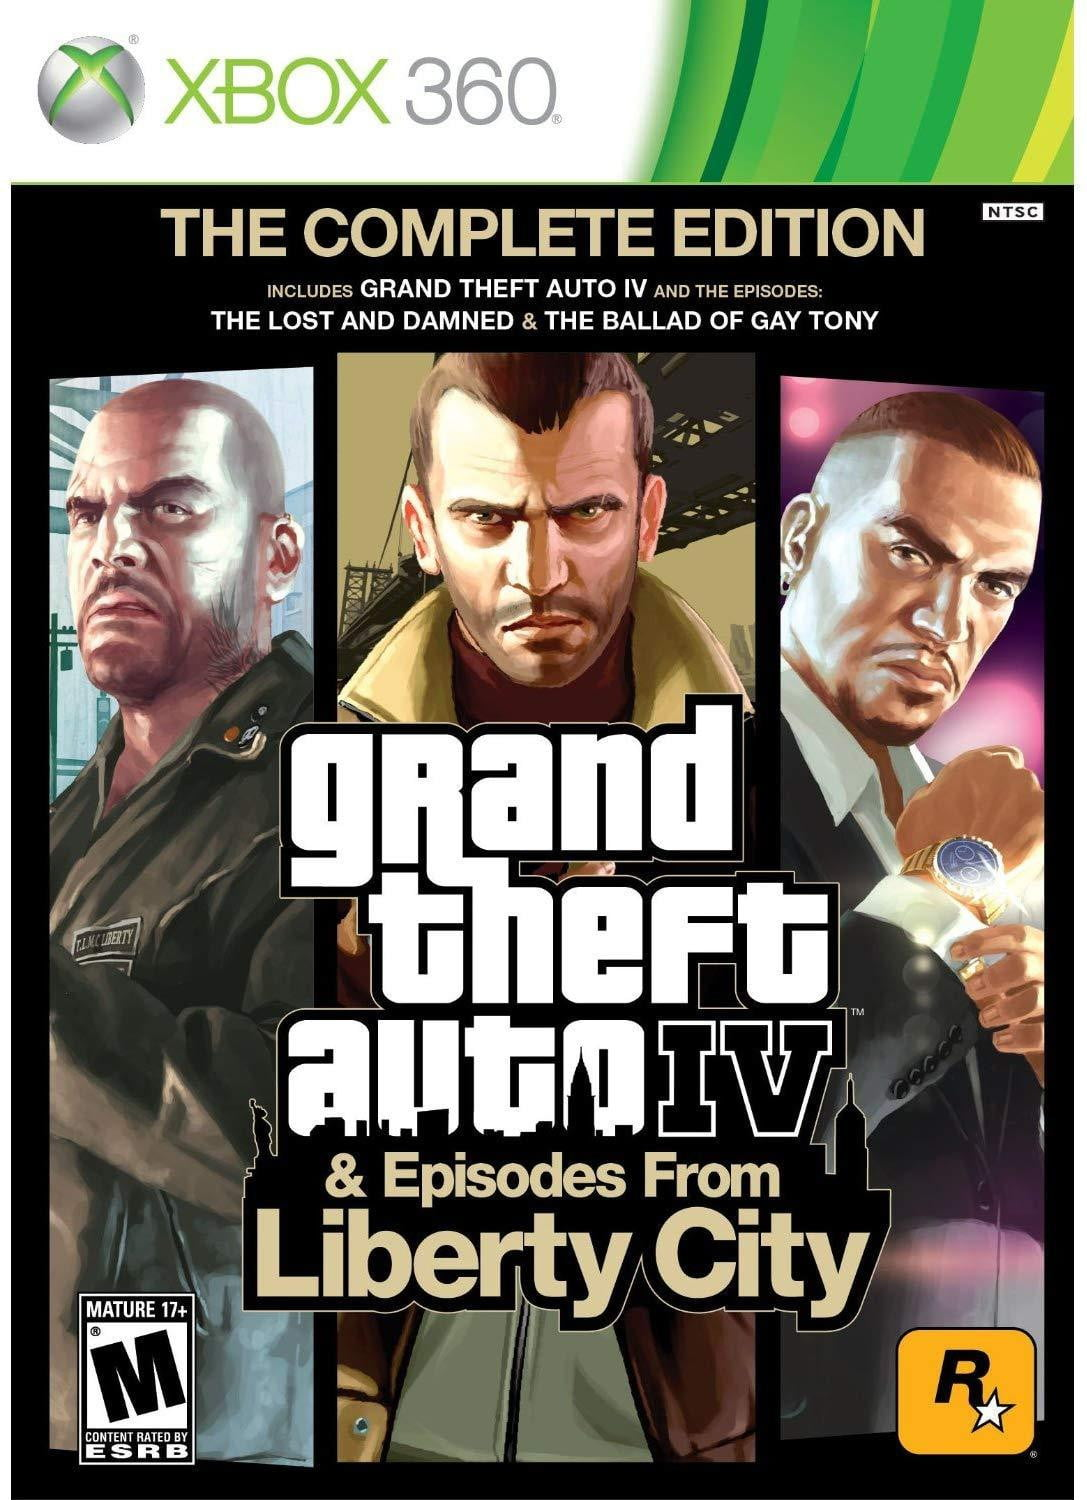 Buy GTA IV Liberity City (XBOX 360) XBOX 360 Game in Egypt - Shamy Stores